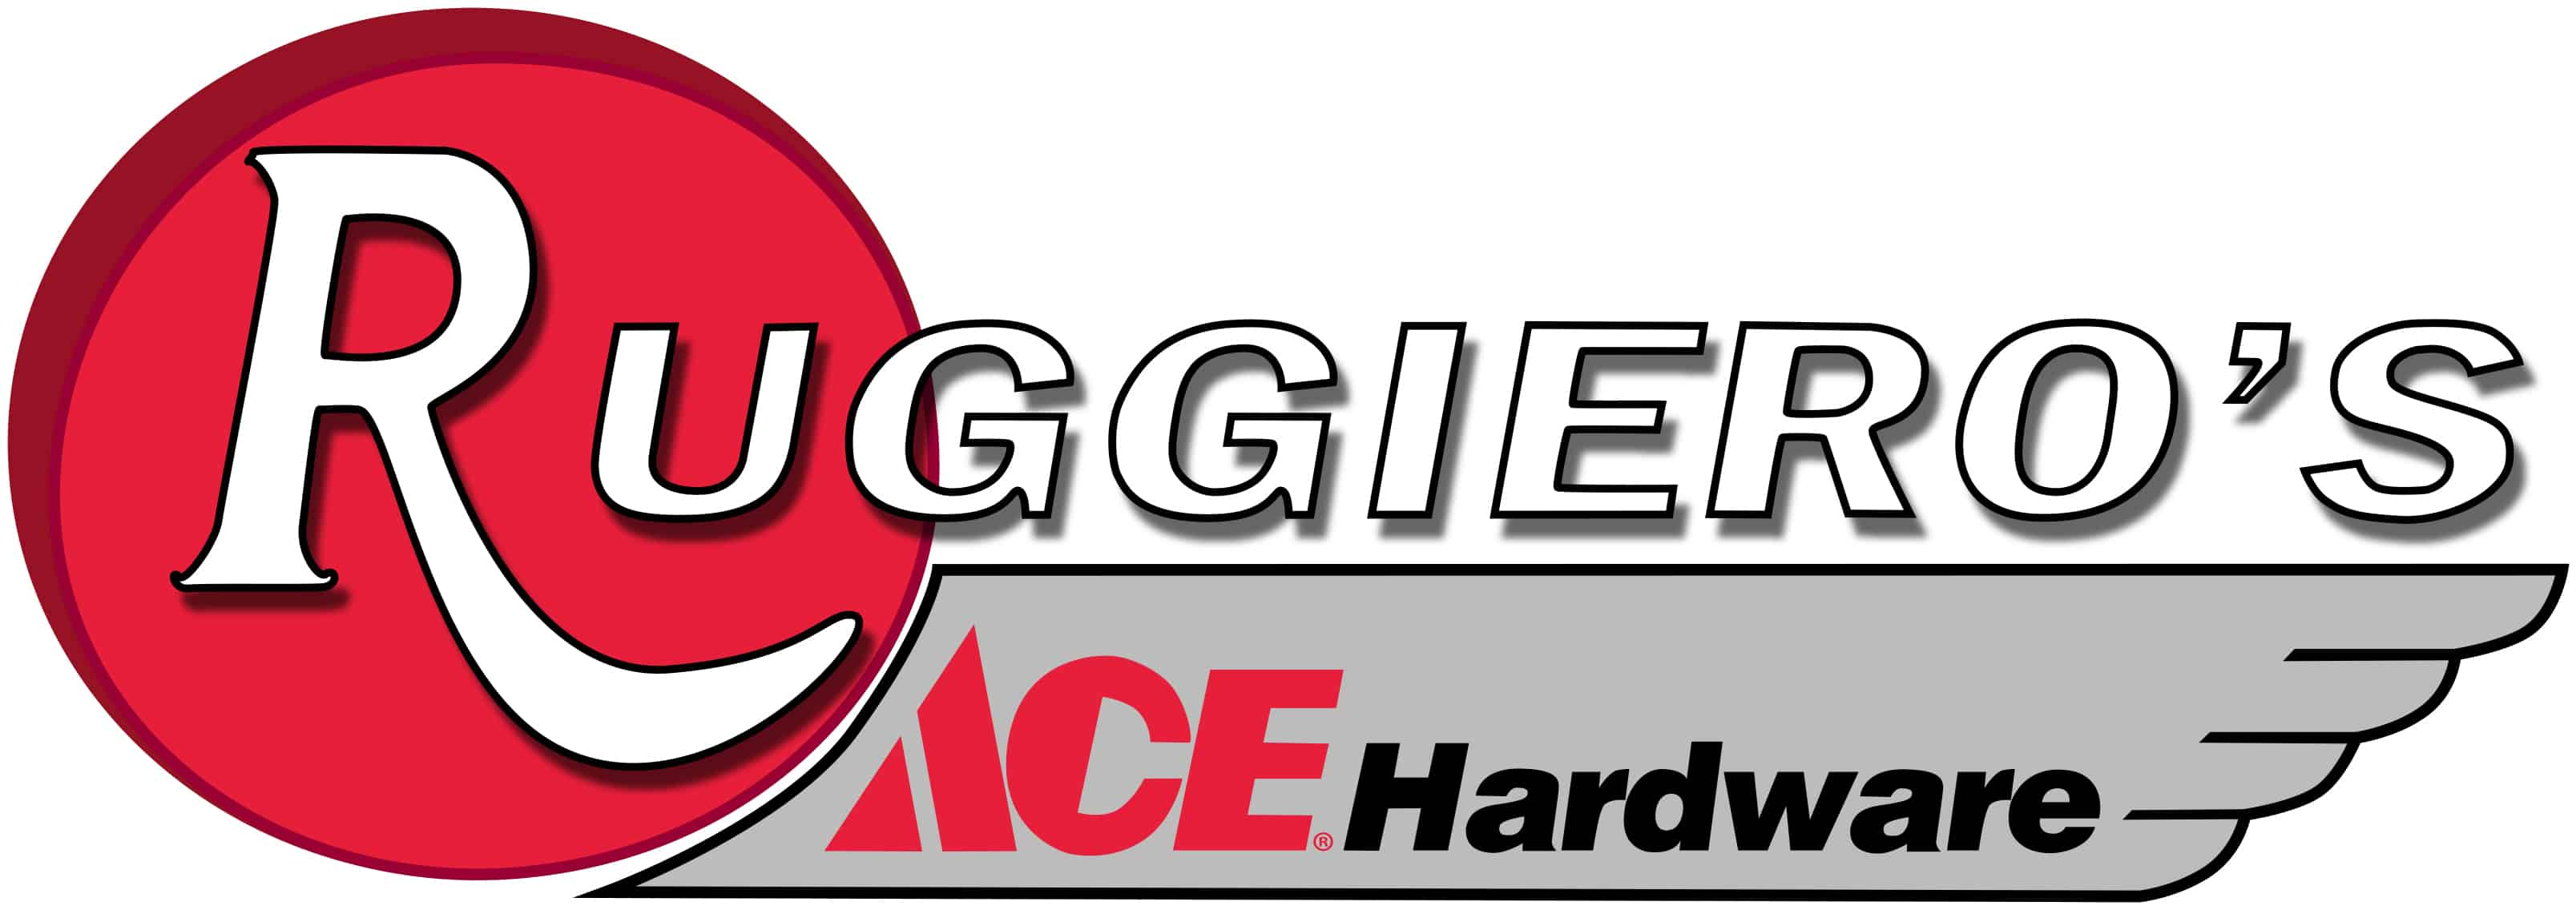 Ruggiero Ace Hardware